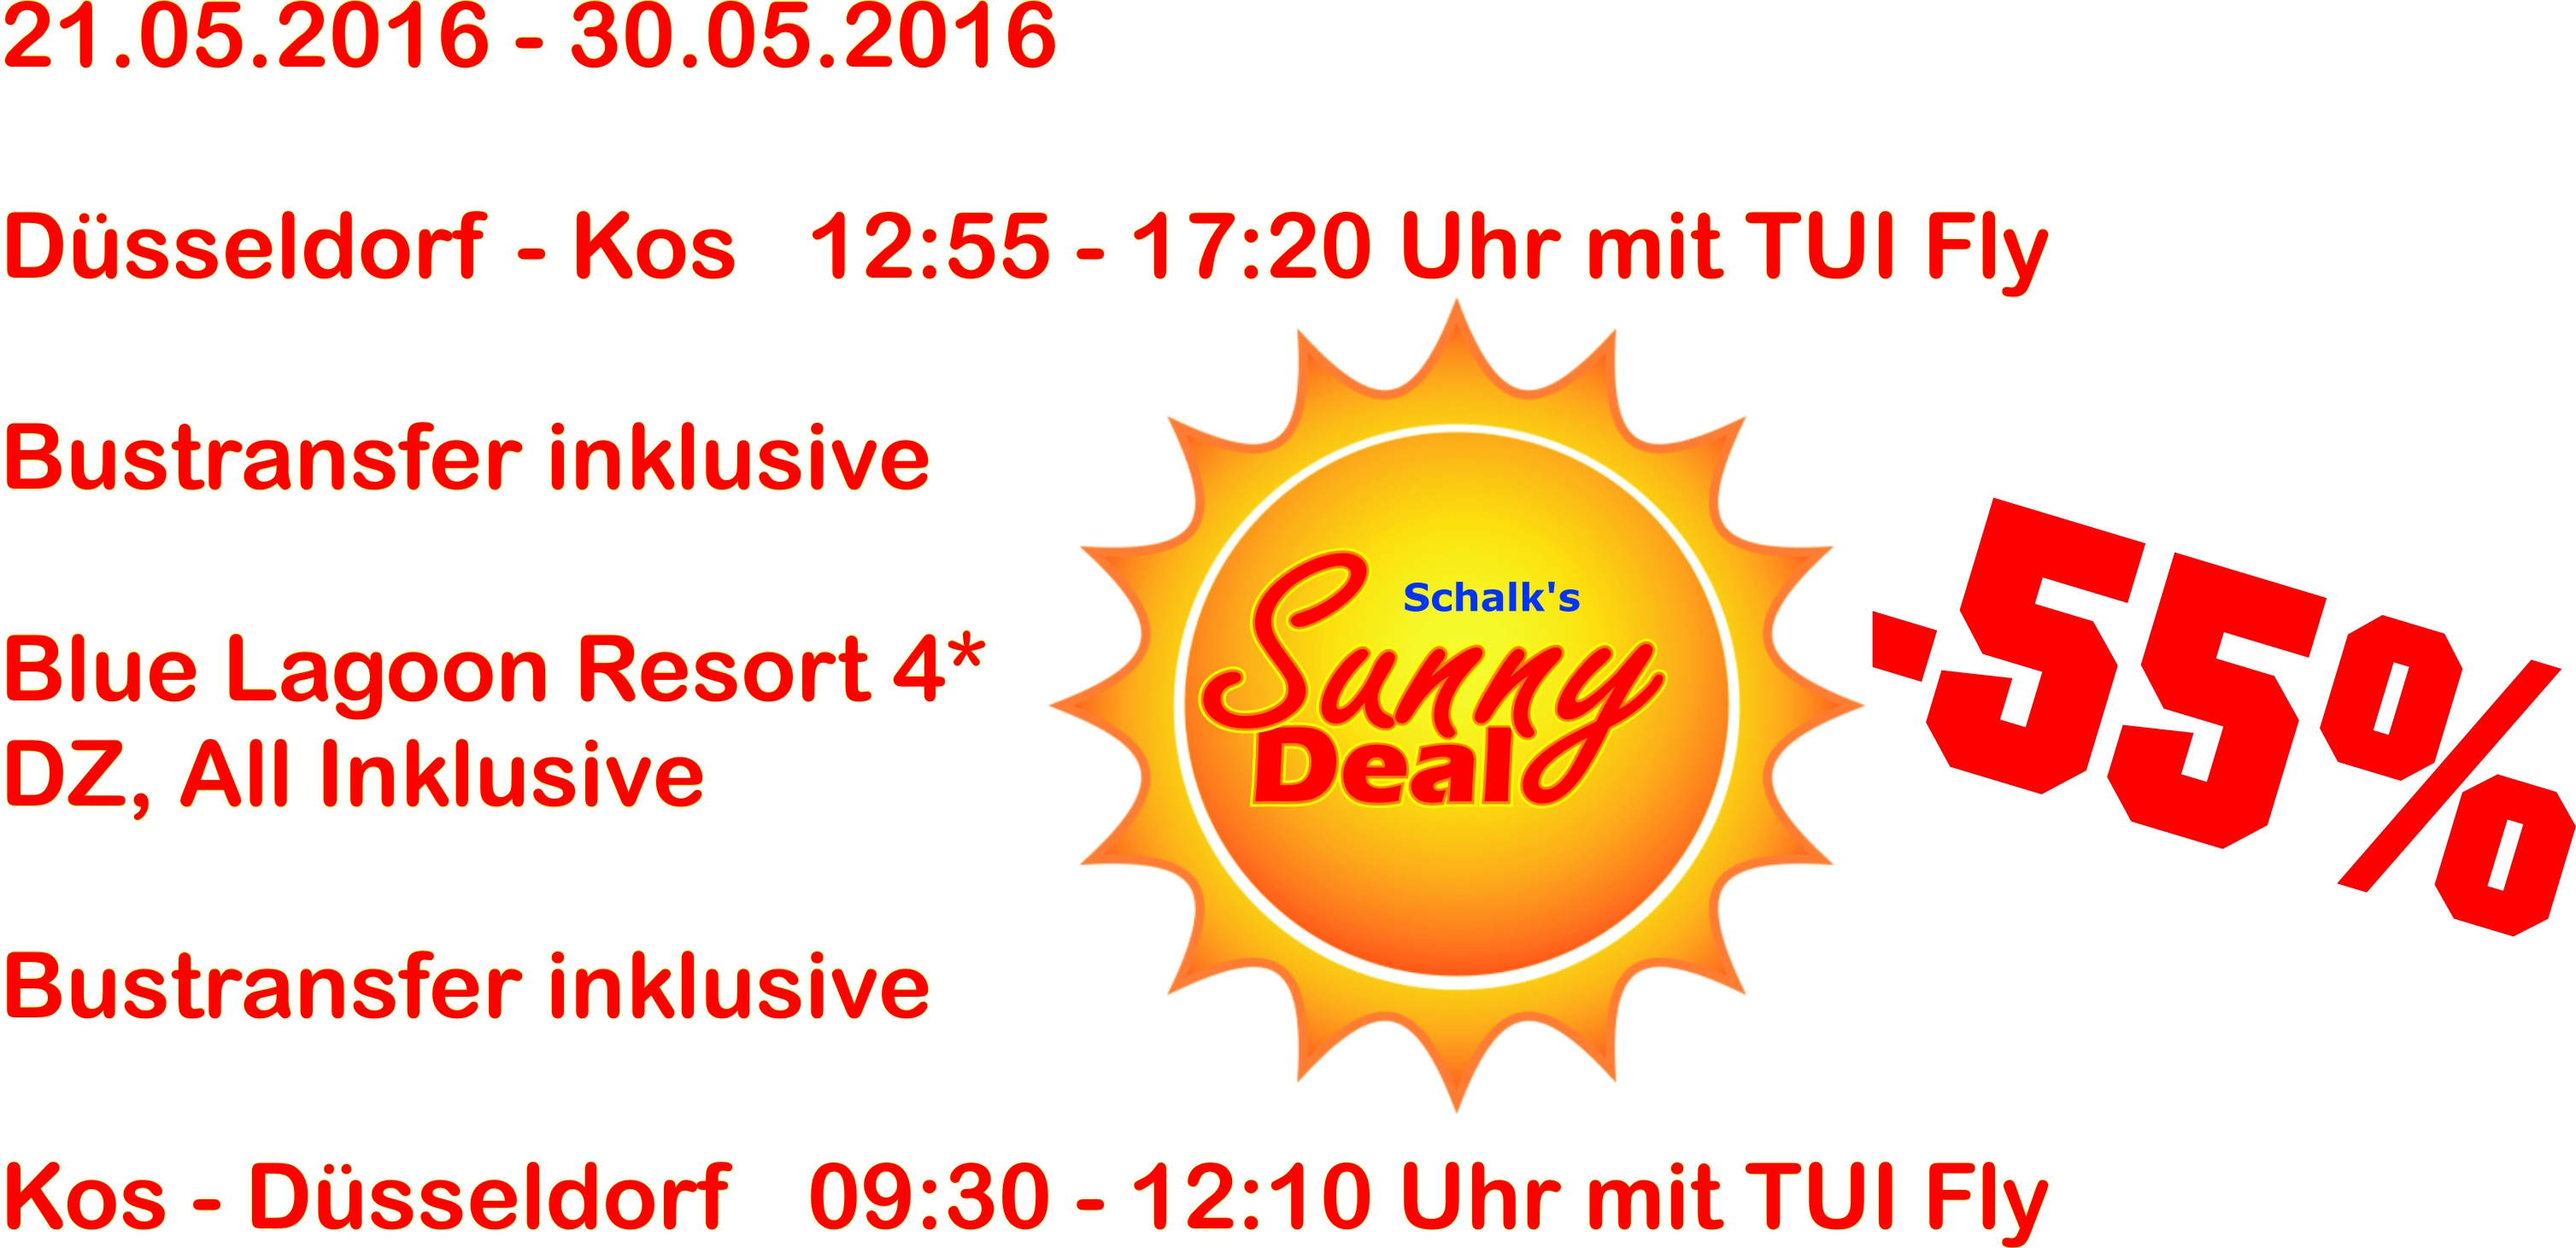 Sunny Deal Angebot aktuell 2